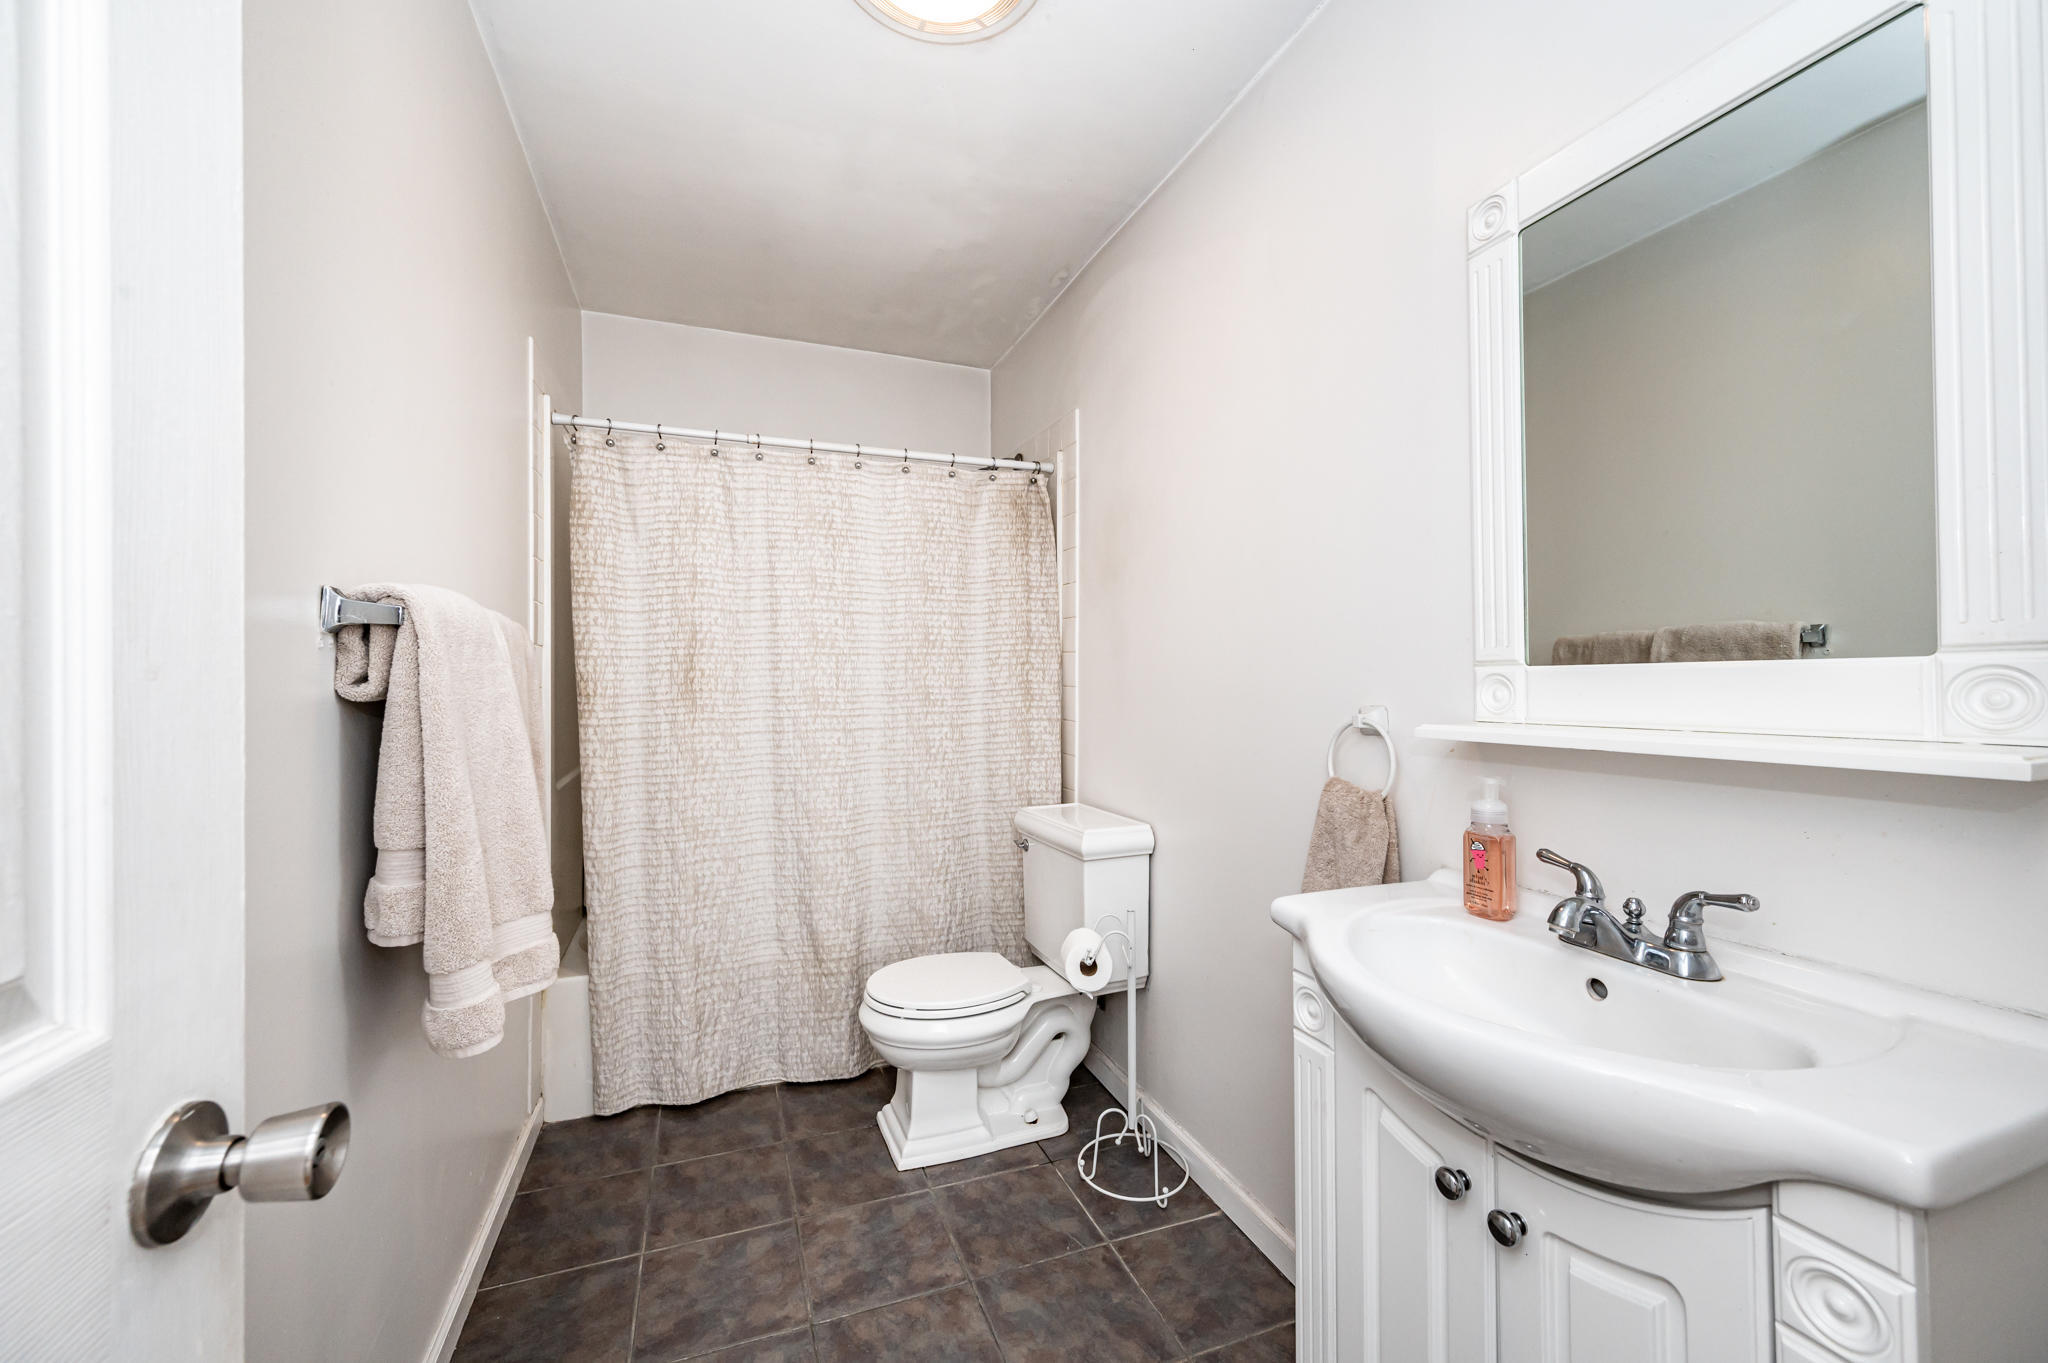 1100 Ruby Drive, Toms River, New Jersey 08753, 3 Bedrooms Bedrooms, ,2 BathroomsBathrooms,Single Family,For Sale,1100 Ruby Drive,2,22112319